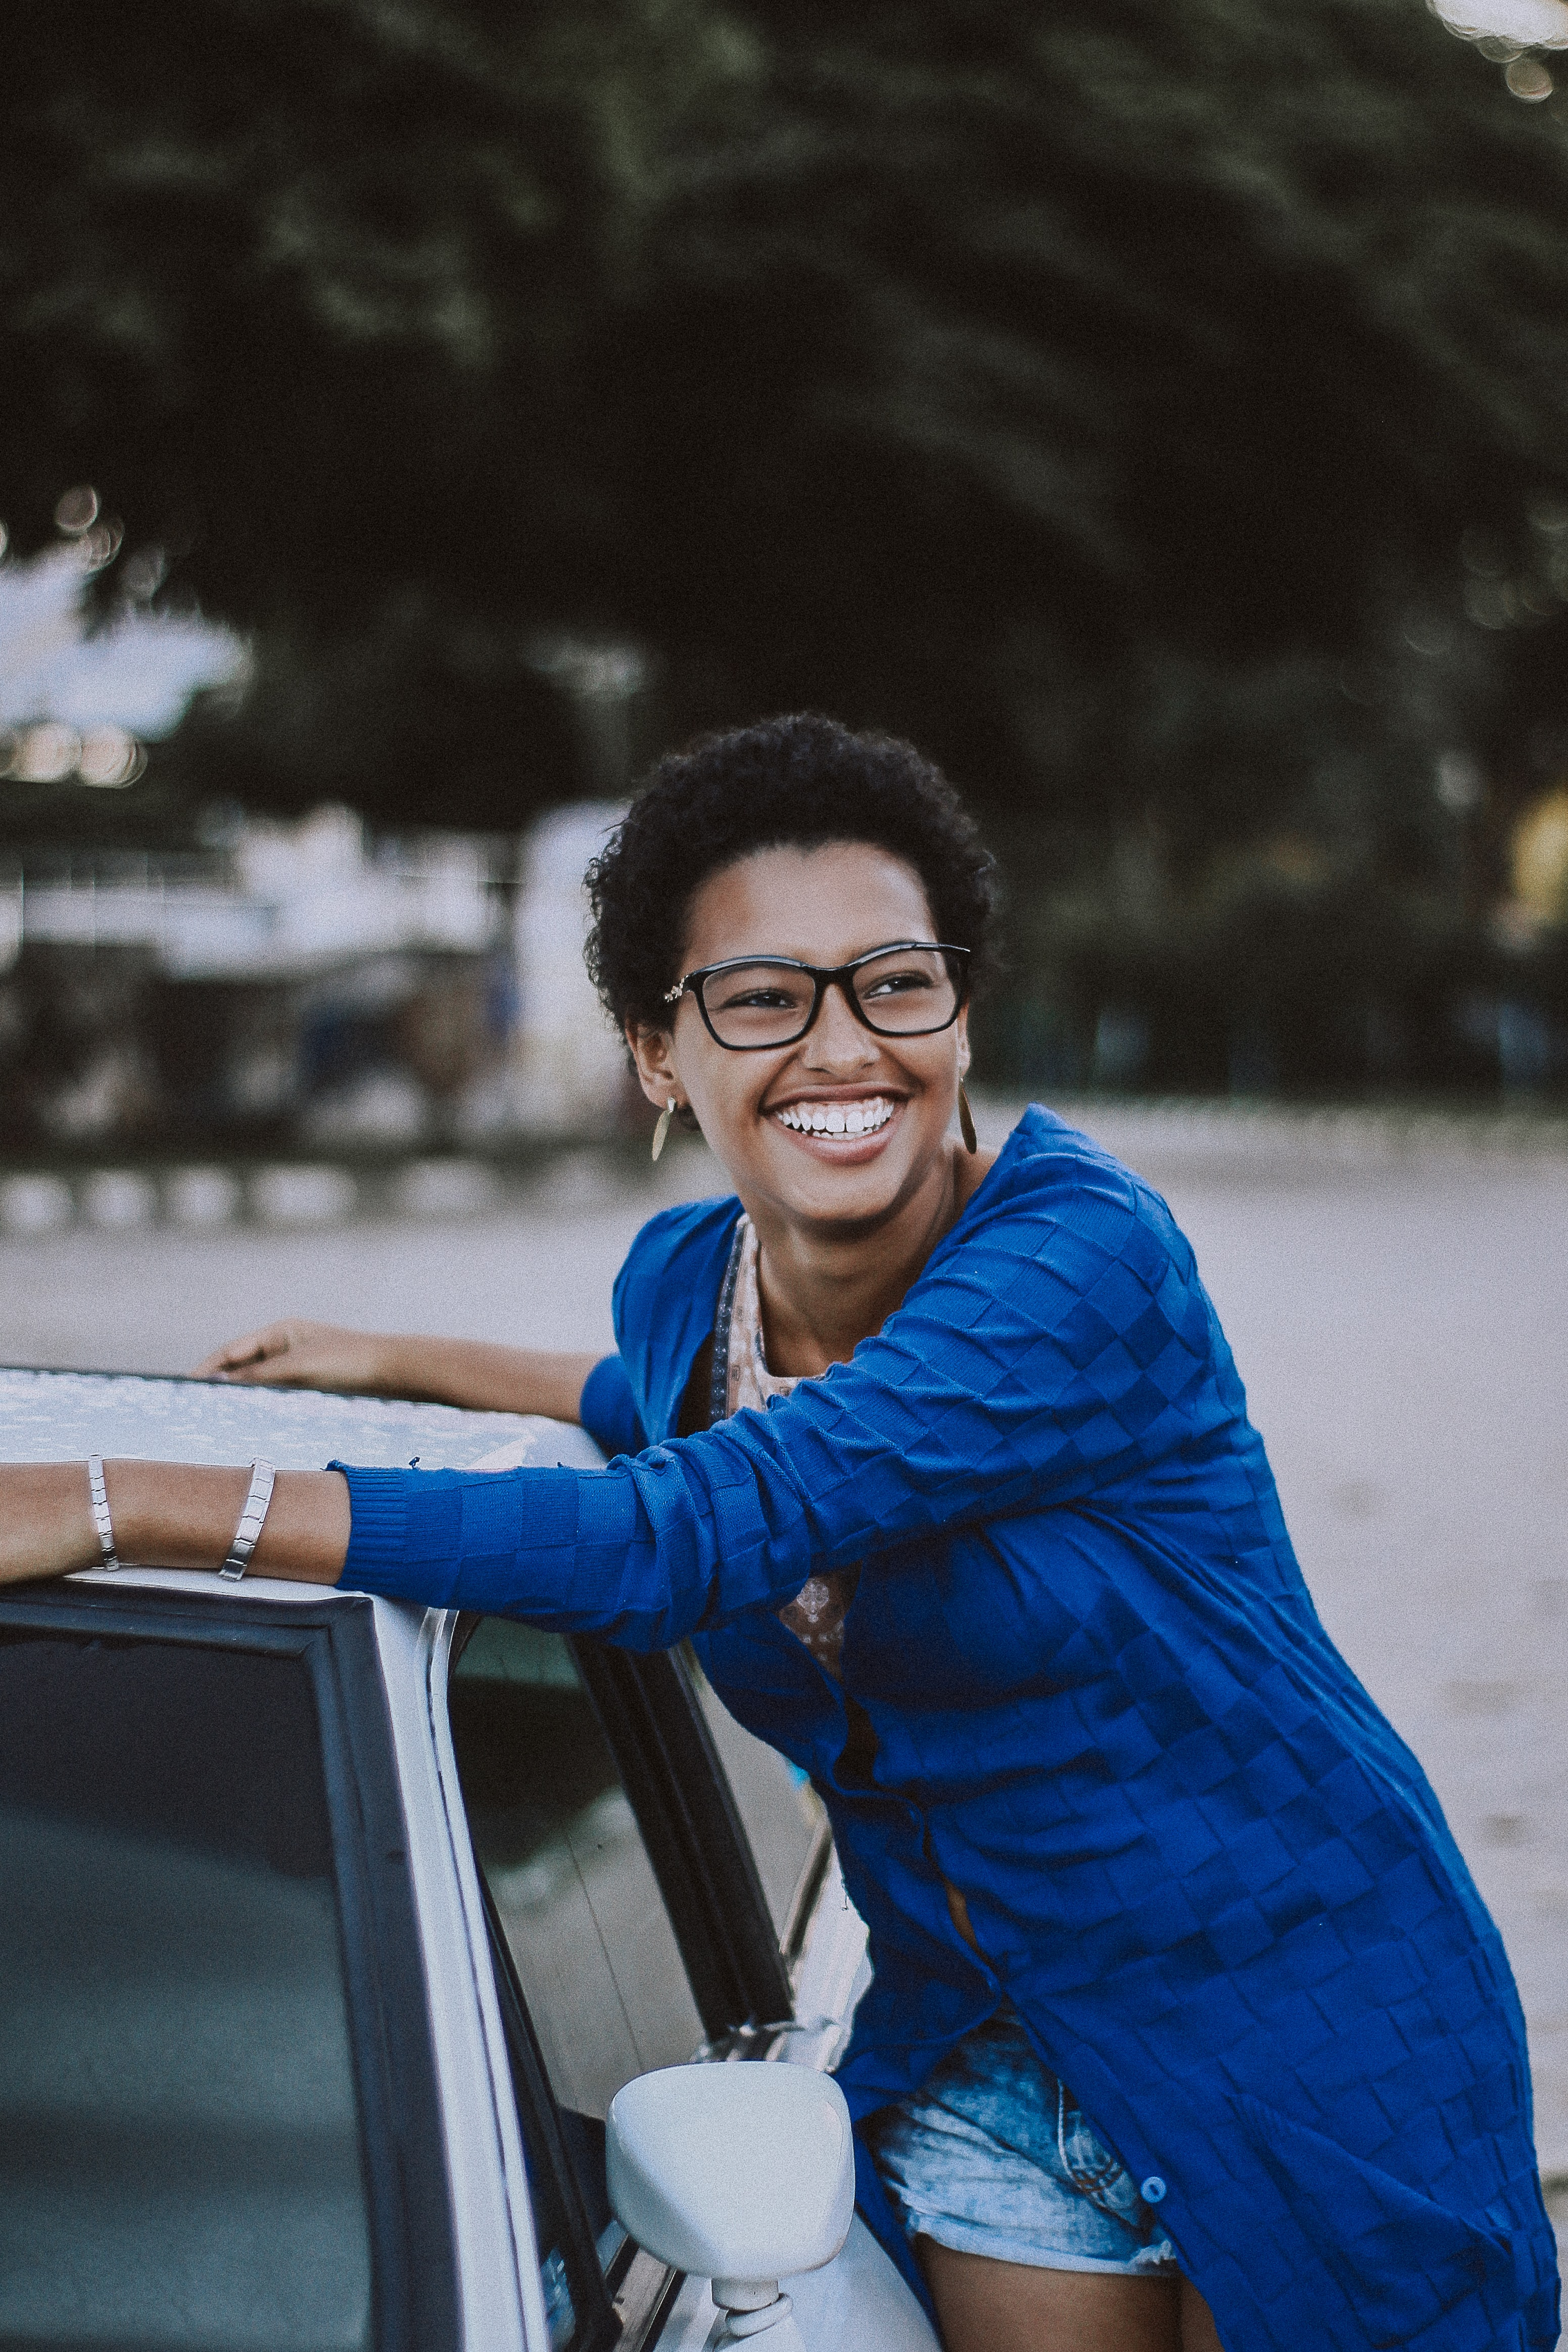 A smiling woman in glasses leaning against a car